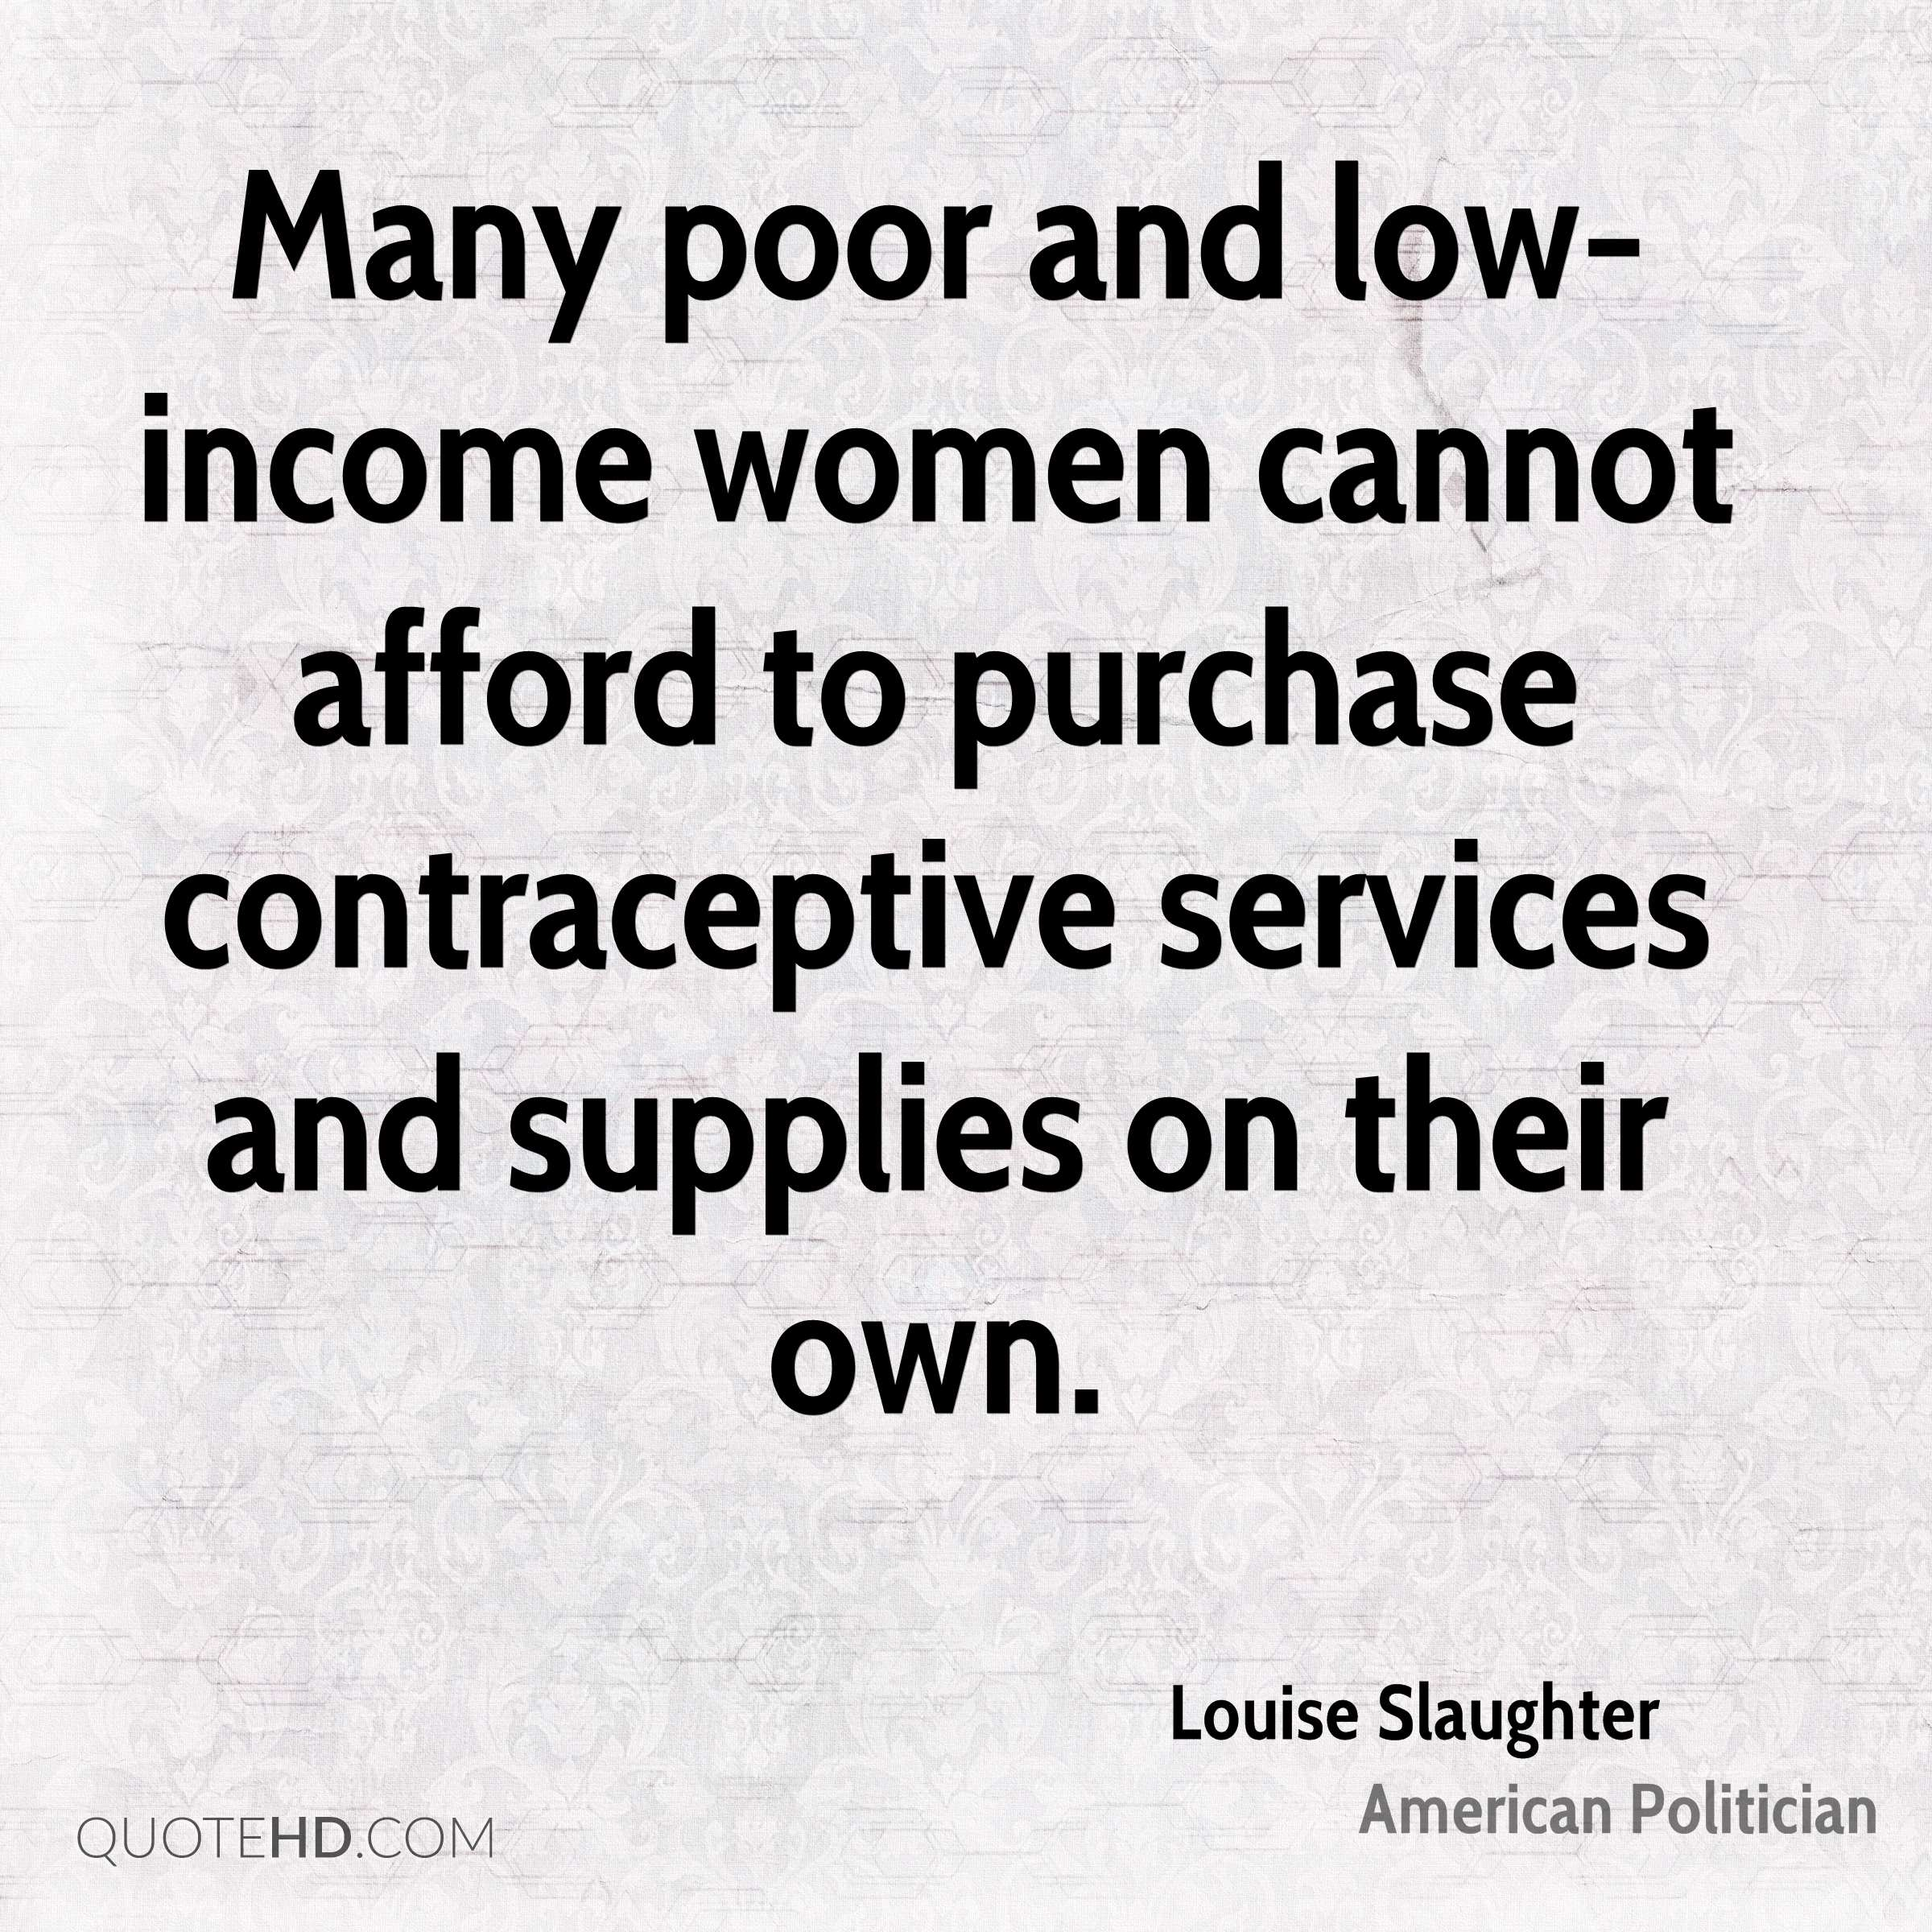 Many poor and low-income women cannot afford to purchase contraceptive services and supplies on their own.